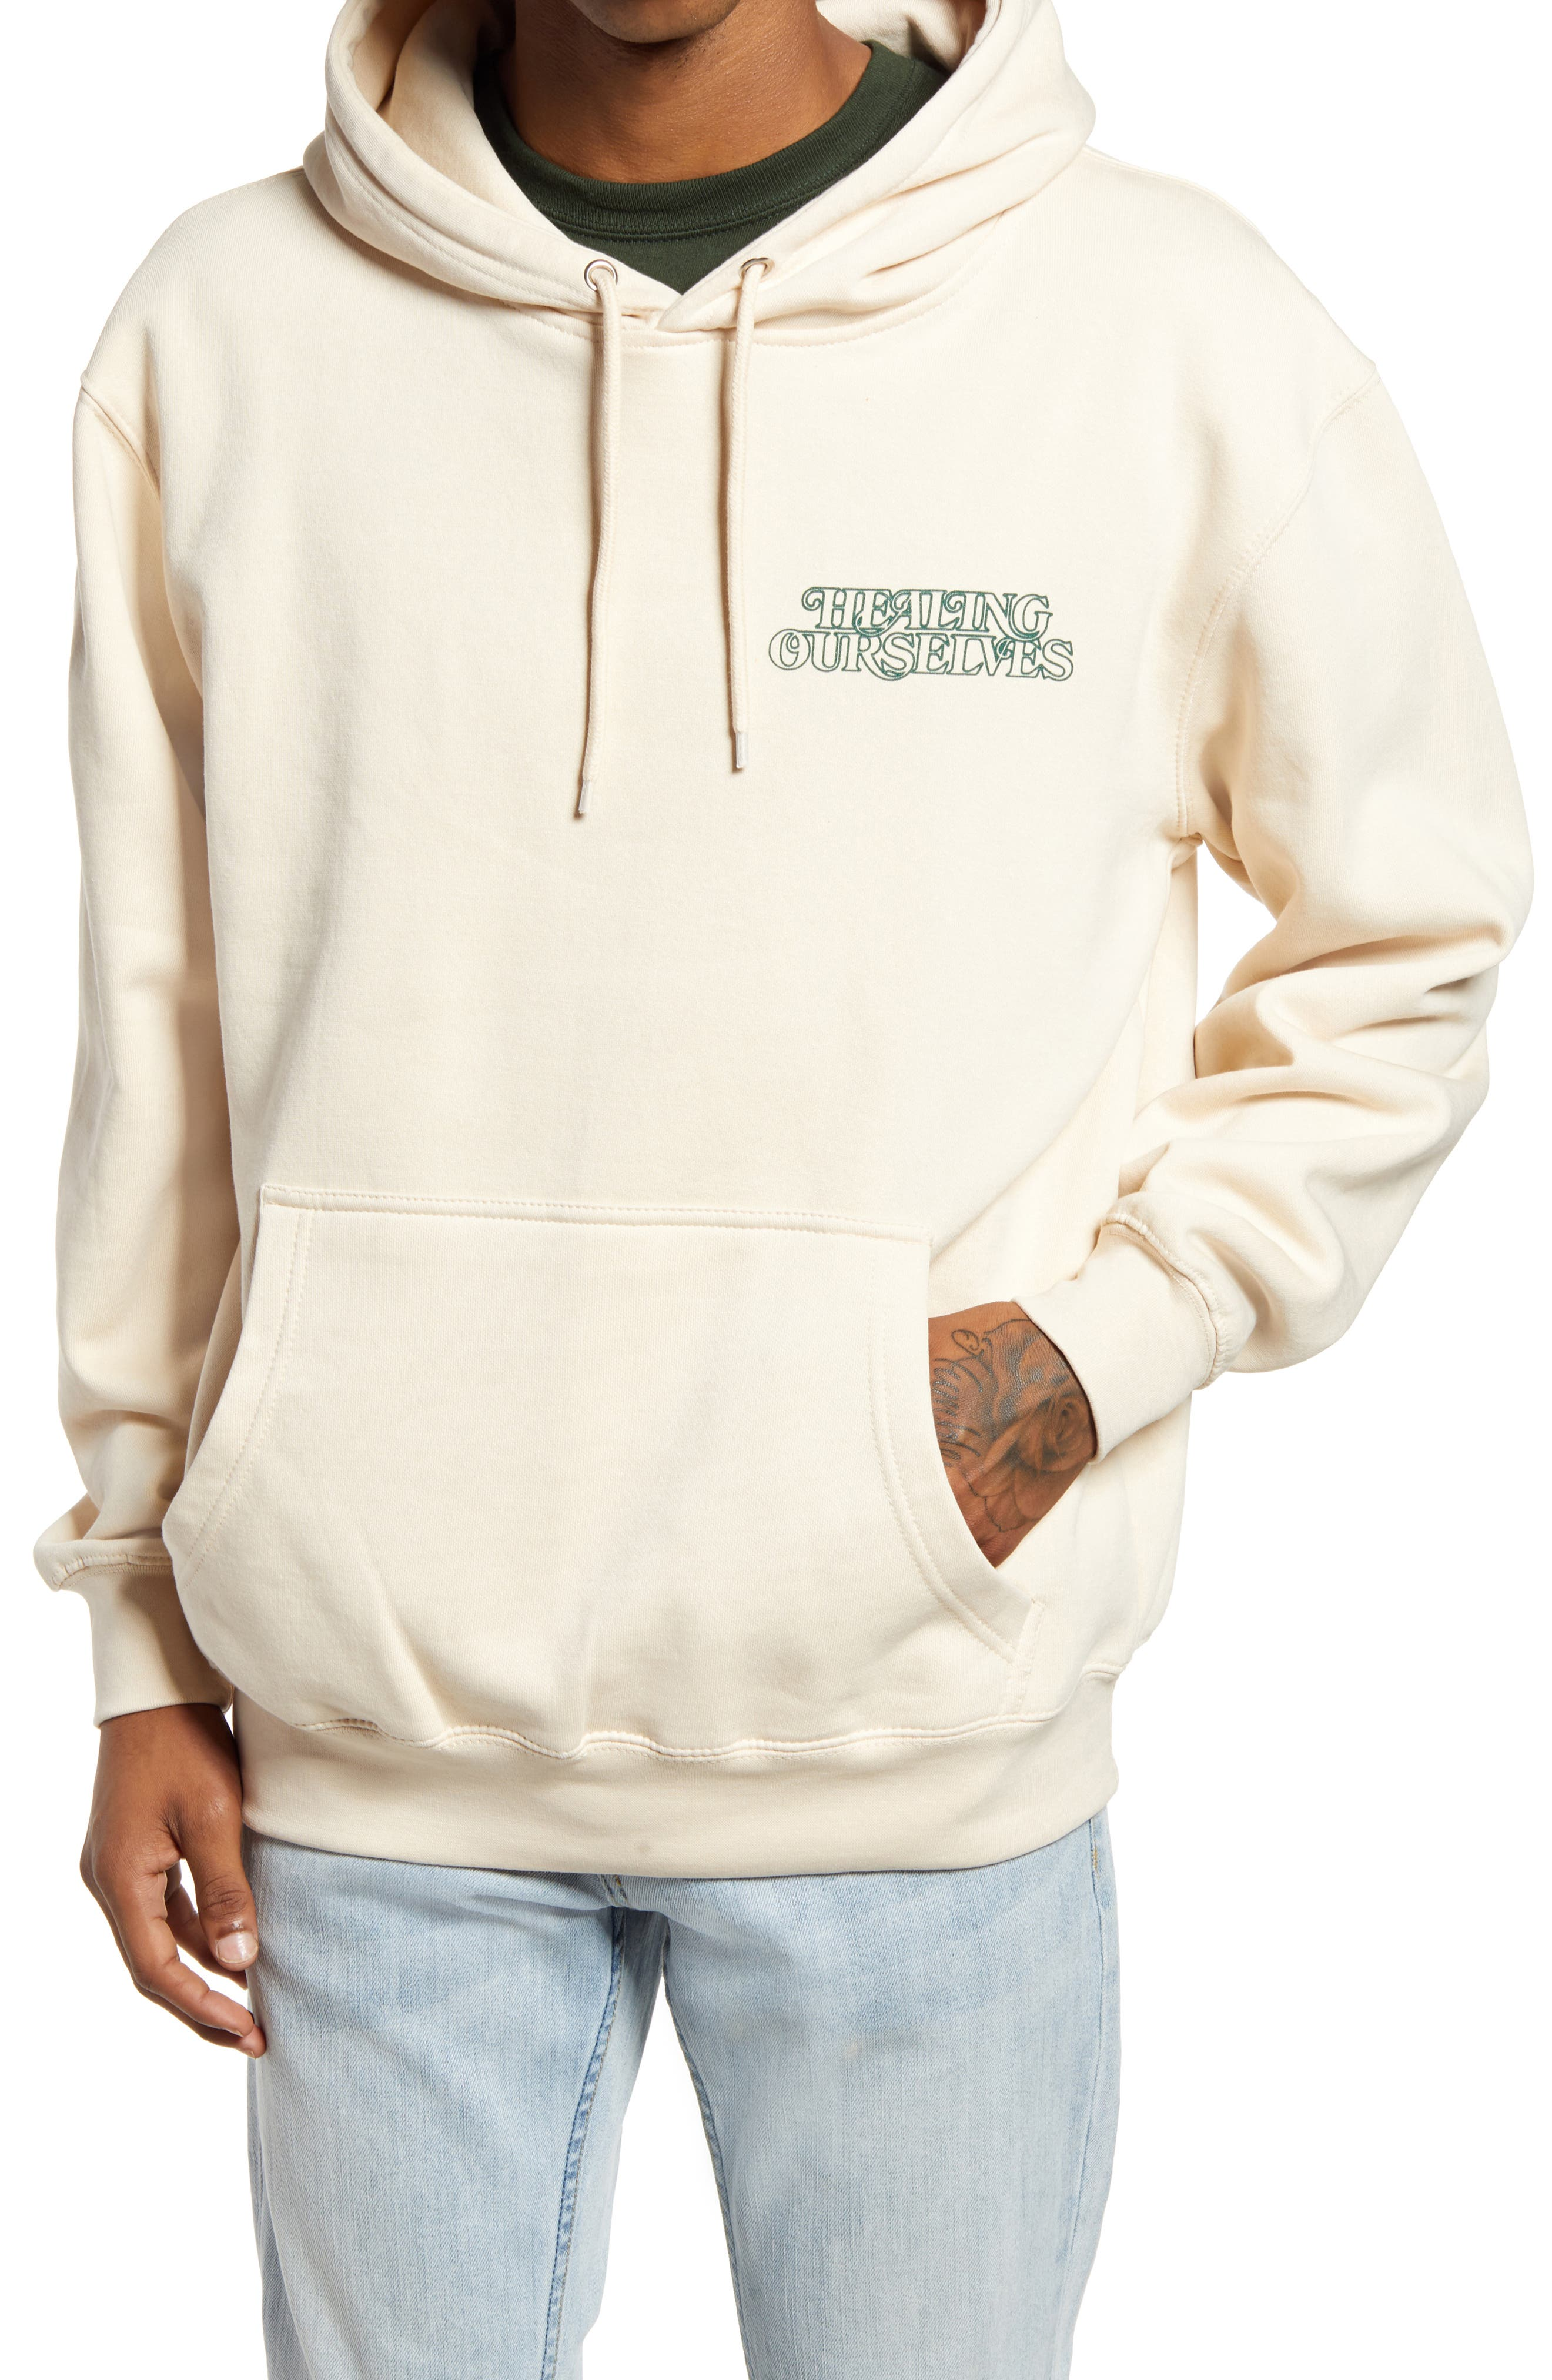 Men's Healing Ourselves Graphic Hoodie